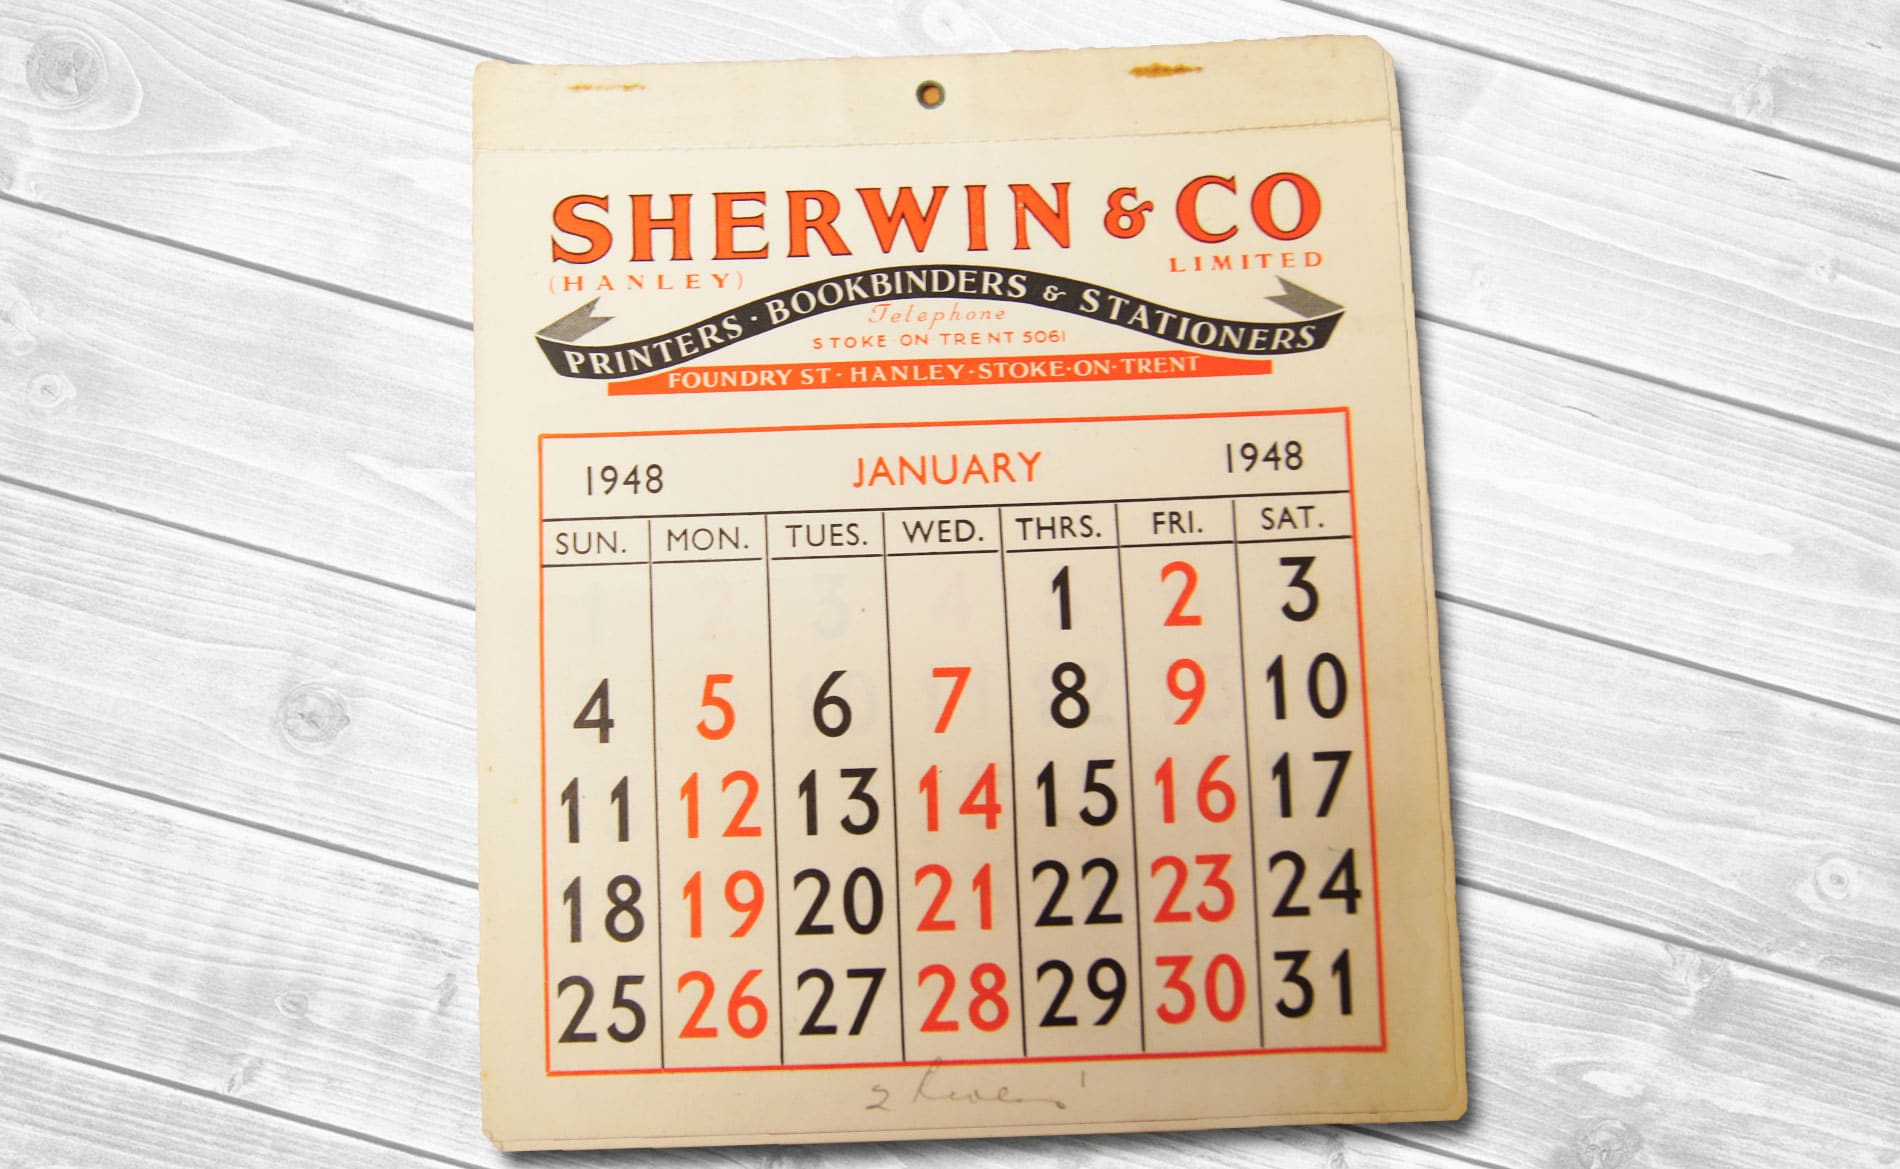 Sherwin Rivers Printers Ltd - Stoke-on-Trent, Staffordshire, Family run printing company for over a century - Letterpress Calendar from 1948